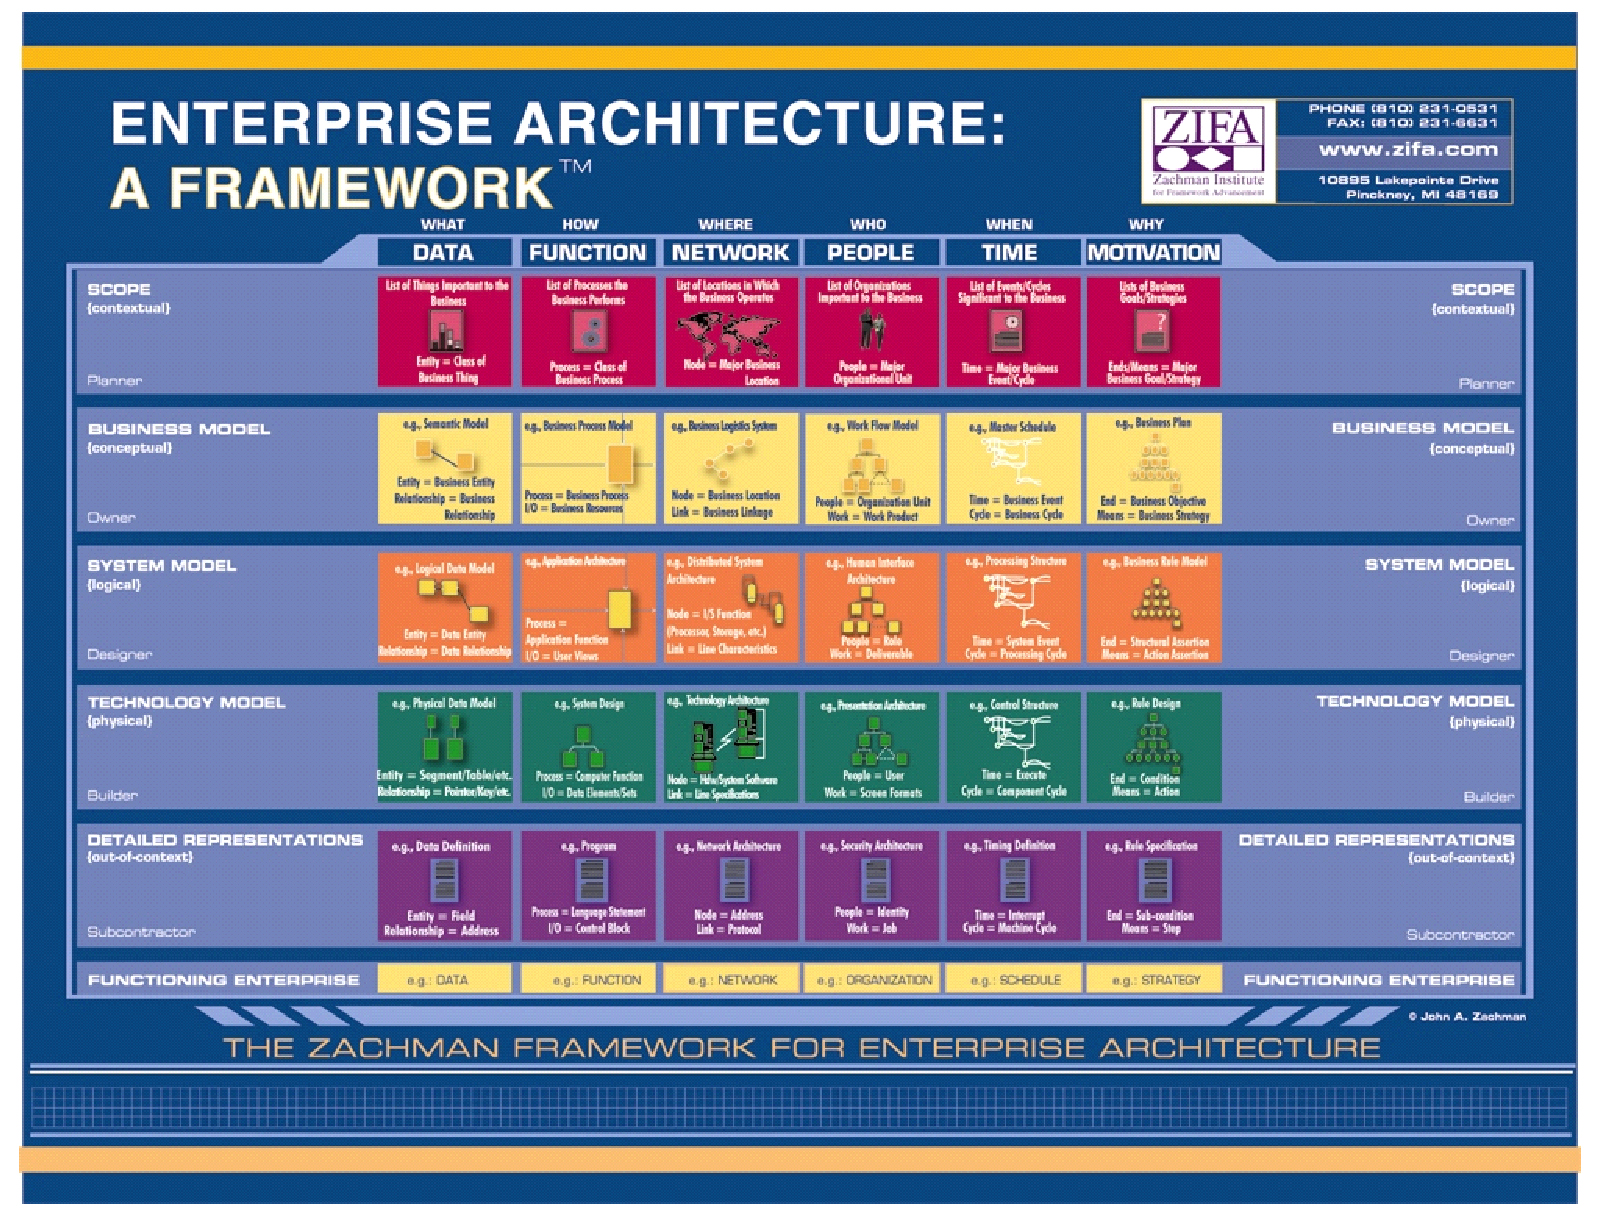 Architecture villa image for Enterprise architecture definition